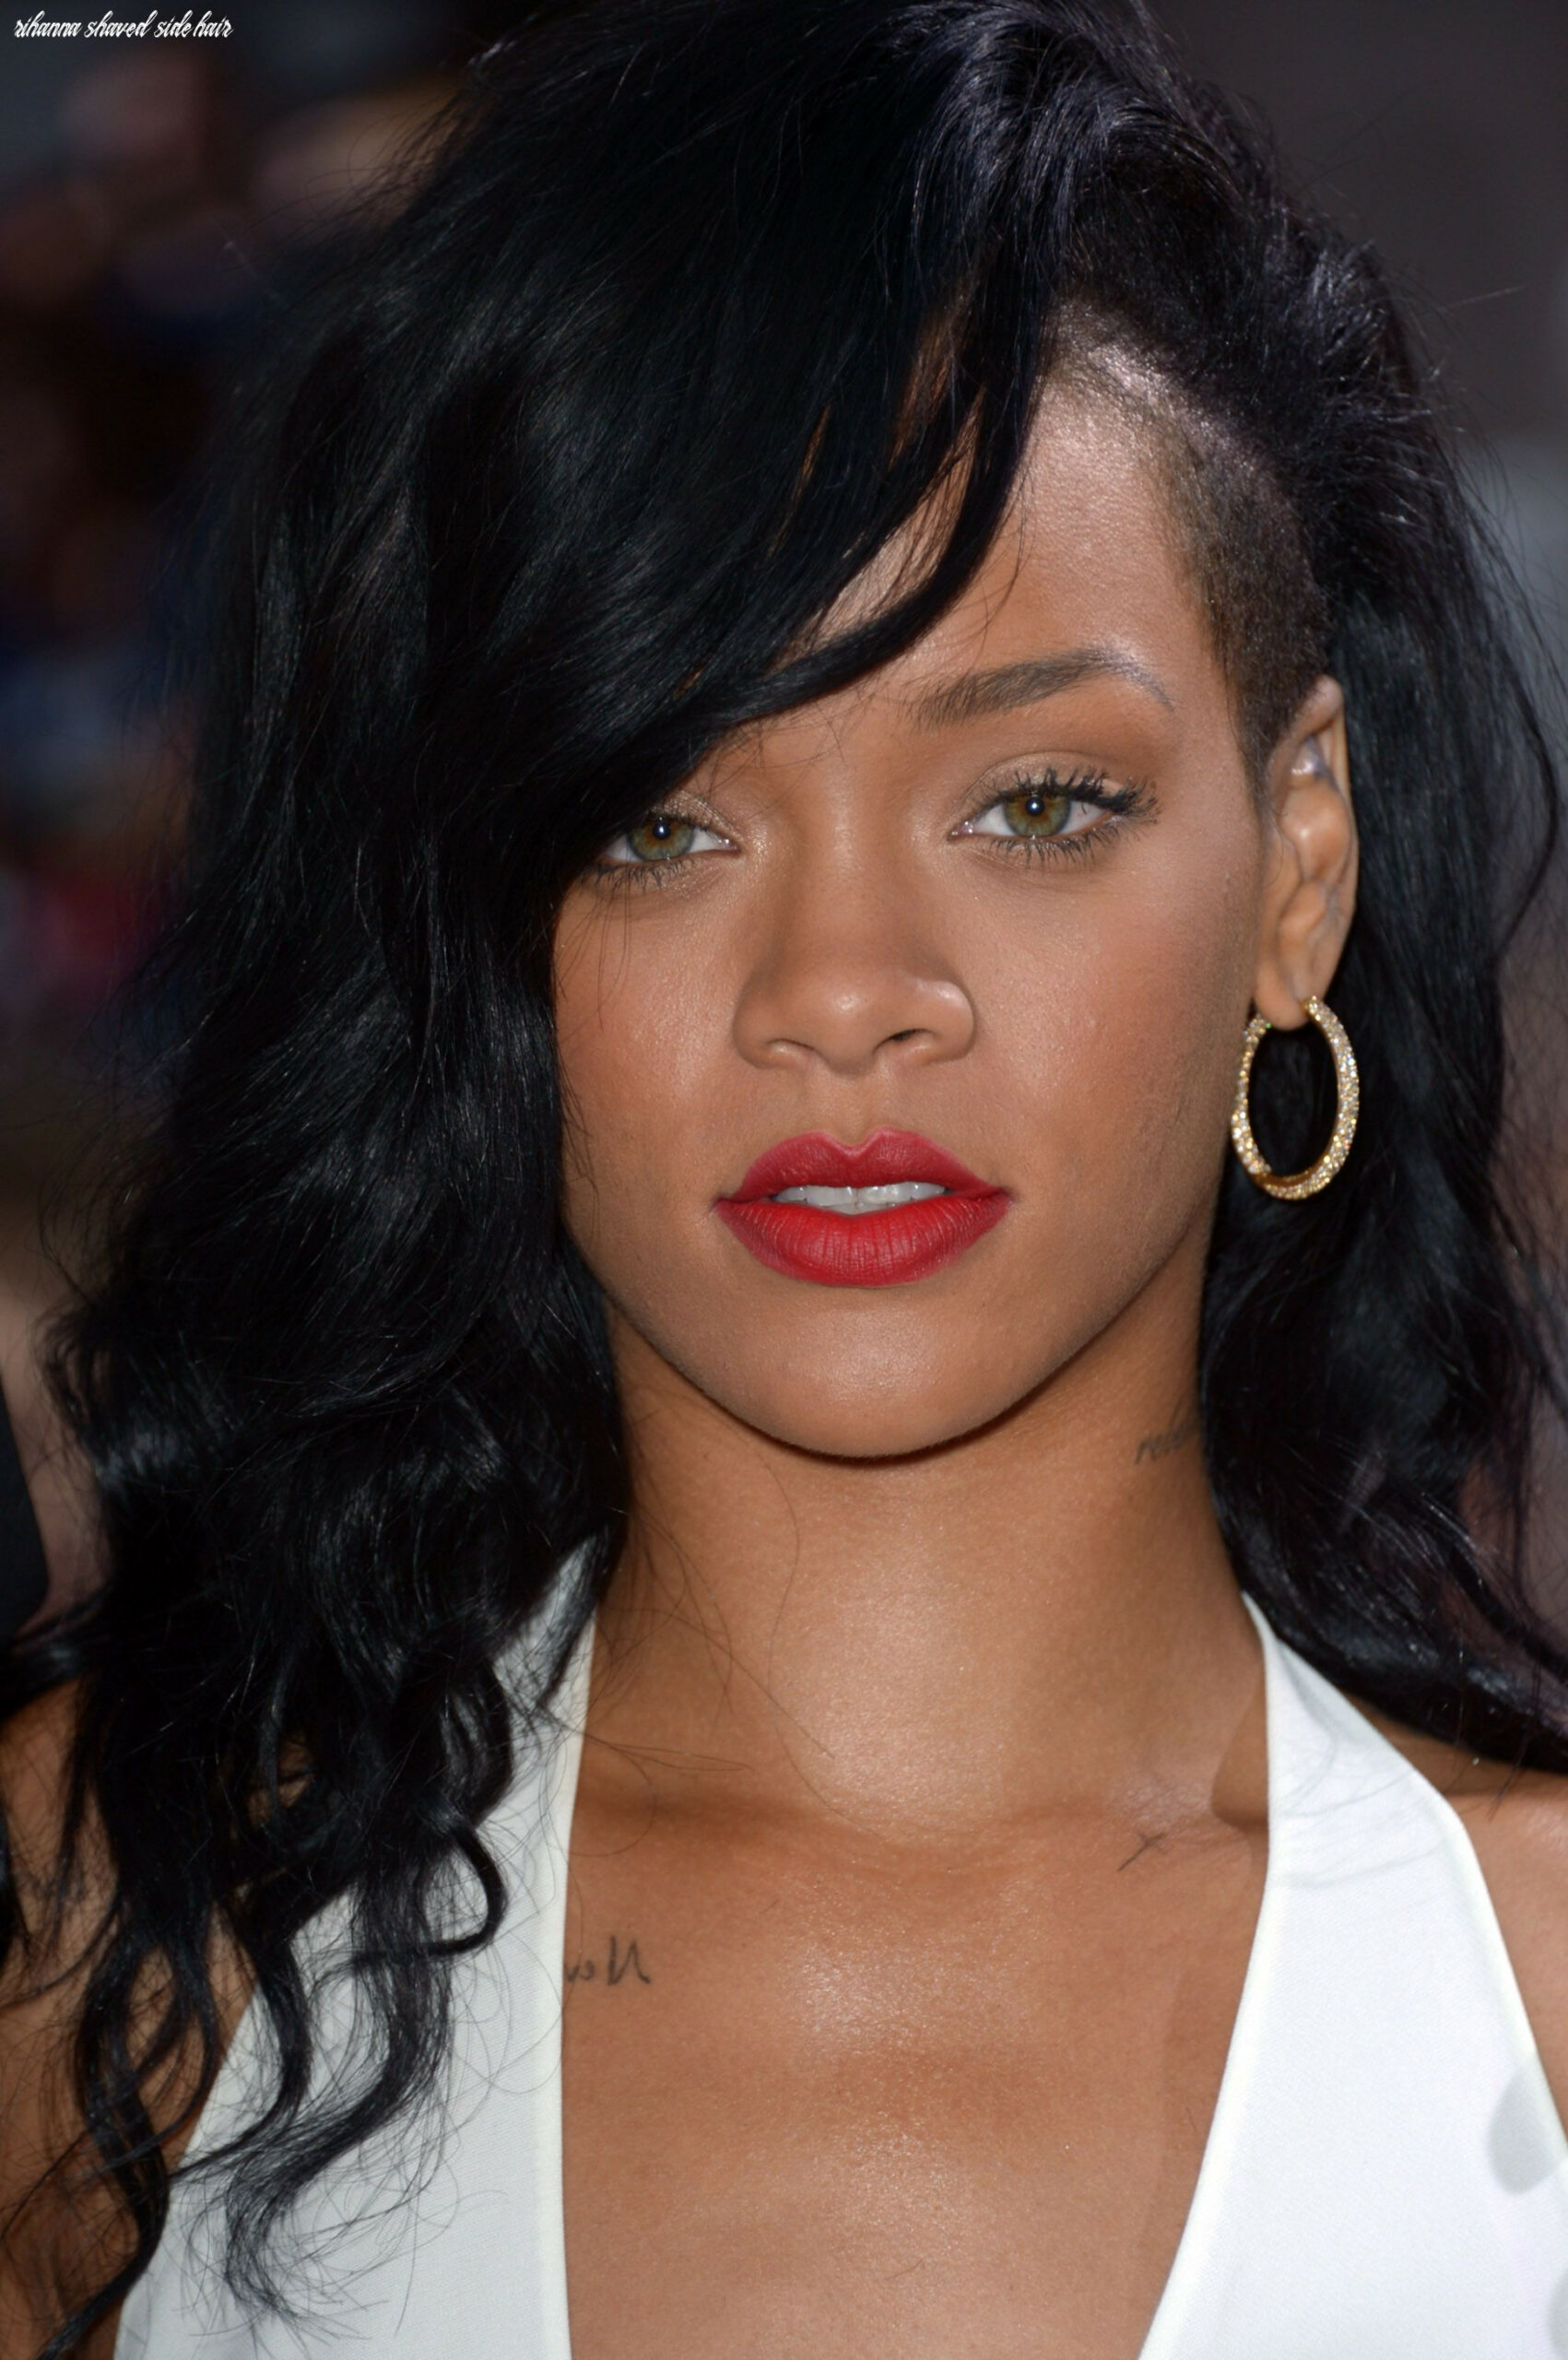 Rihanna wore bright red lips with a white dress for the premiere